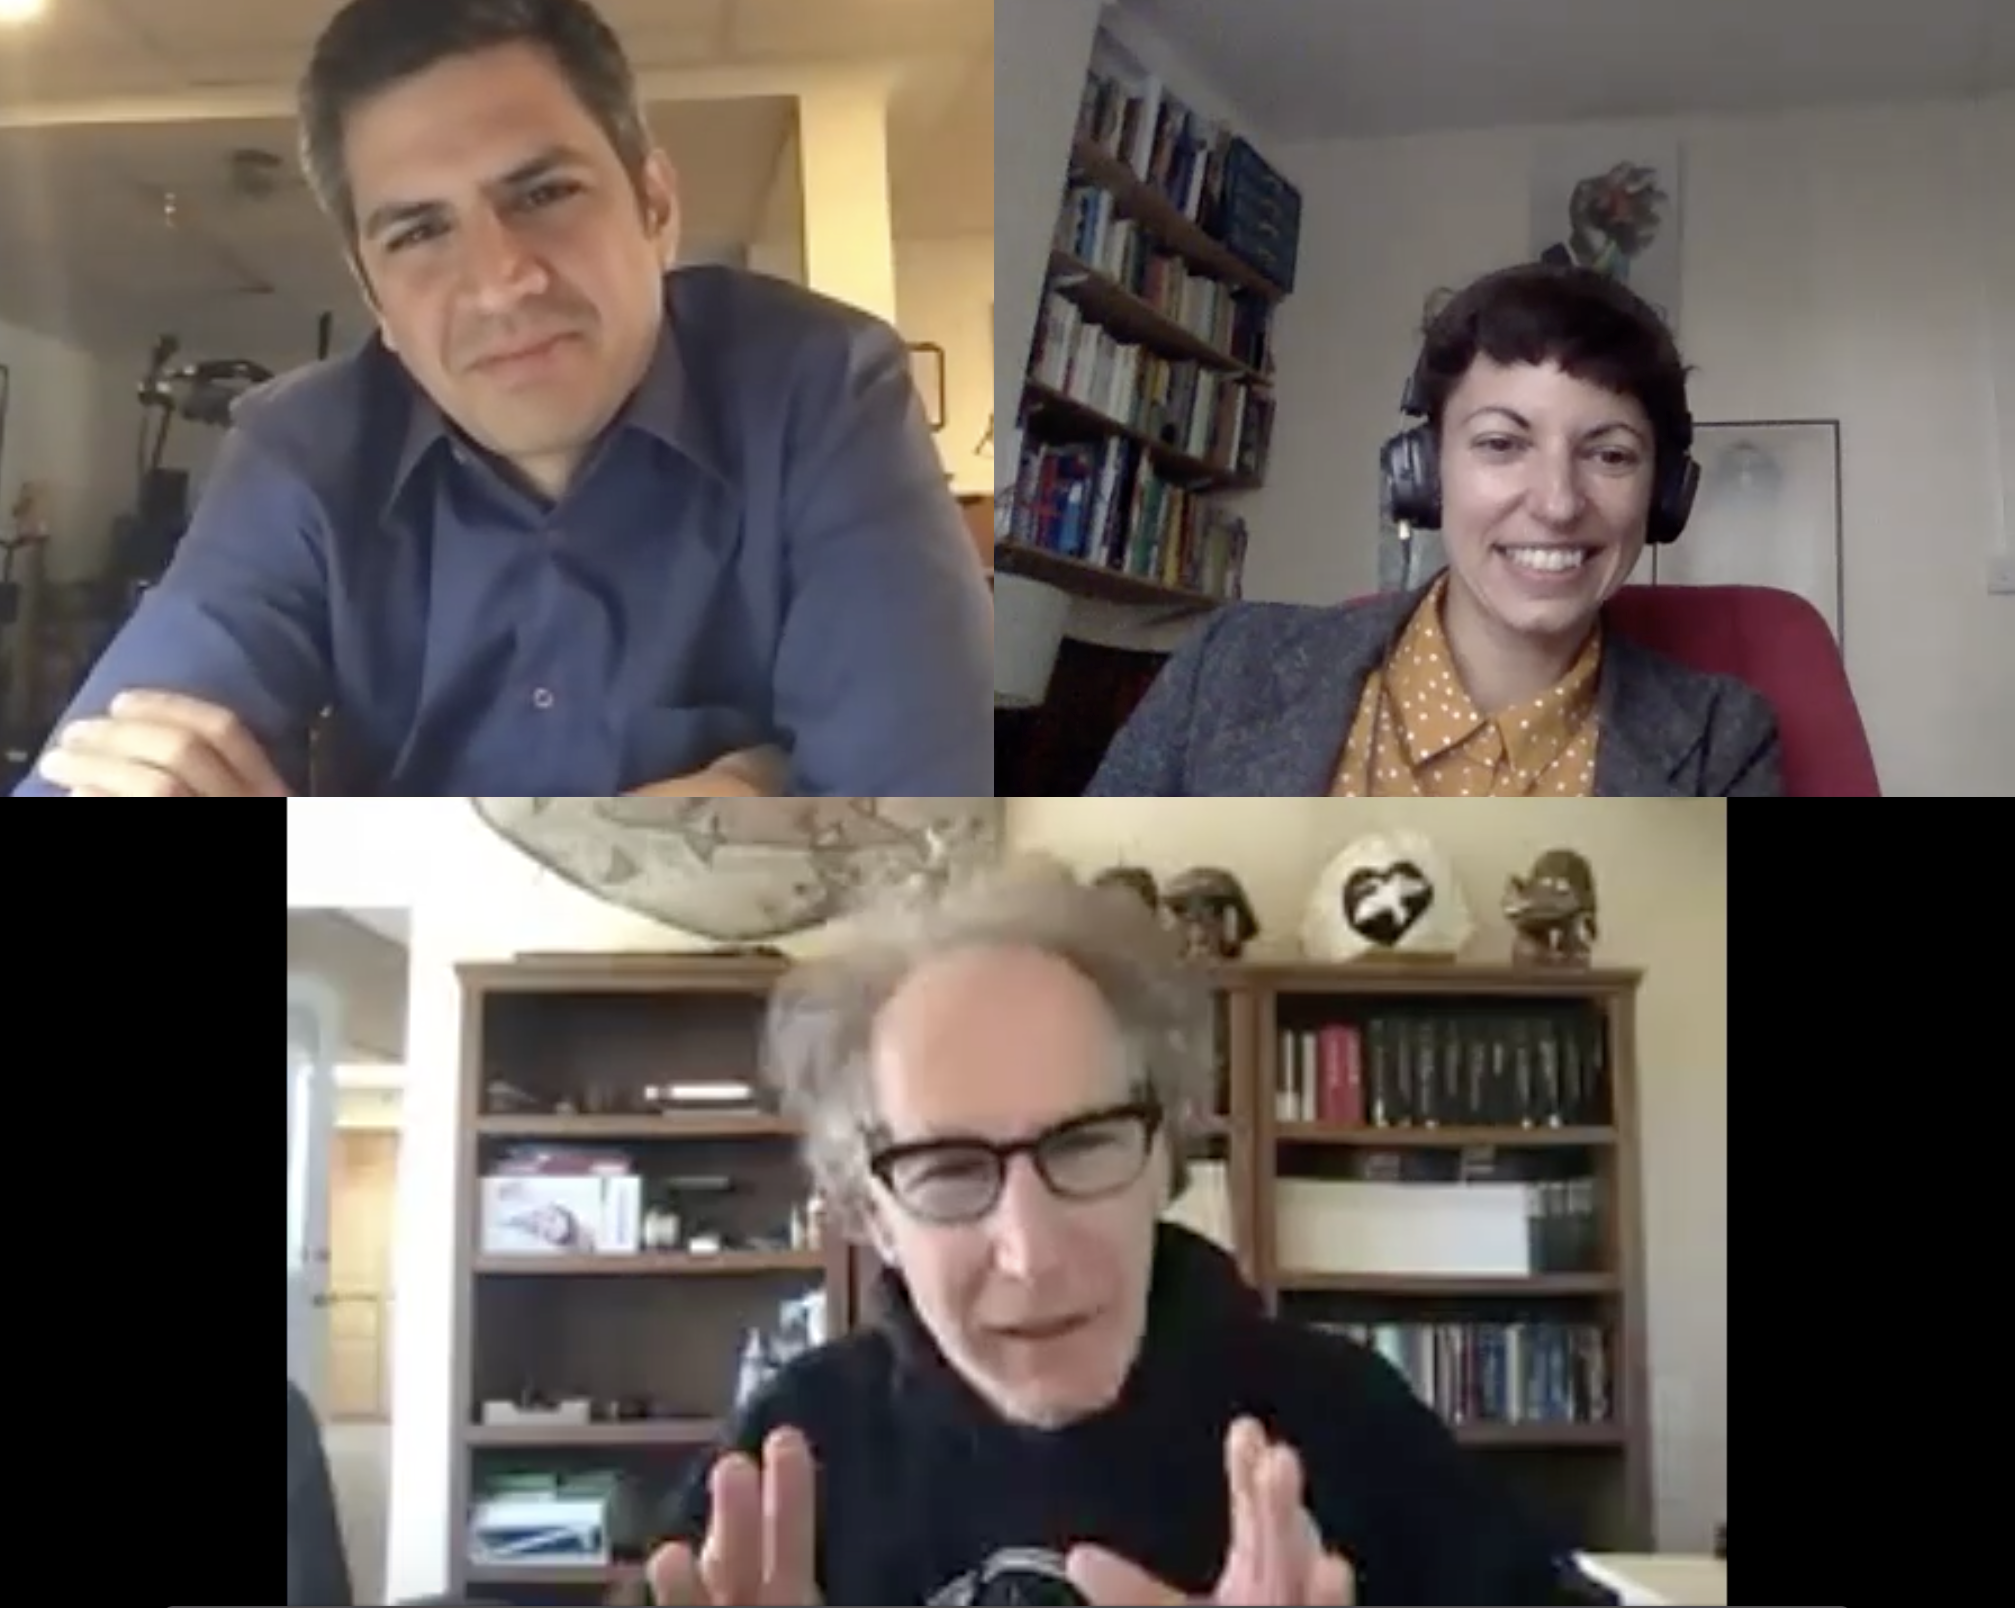 Figure 0. Costas Nakassis (CN; top-left), Meghanne Barker (MB; top-right), and Steven Feld (SF; bottom); 4 May 2020, online in Chicago, Illinois, Santa Fe, New Mexico, and London, England.